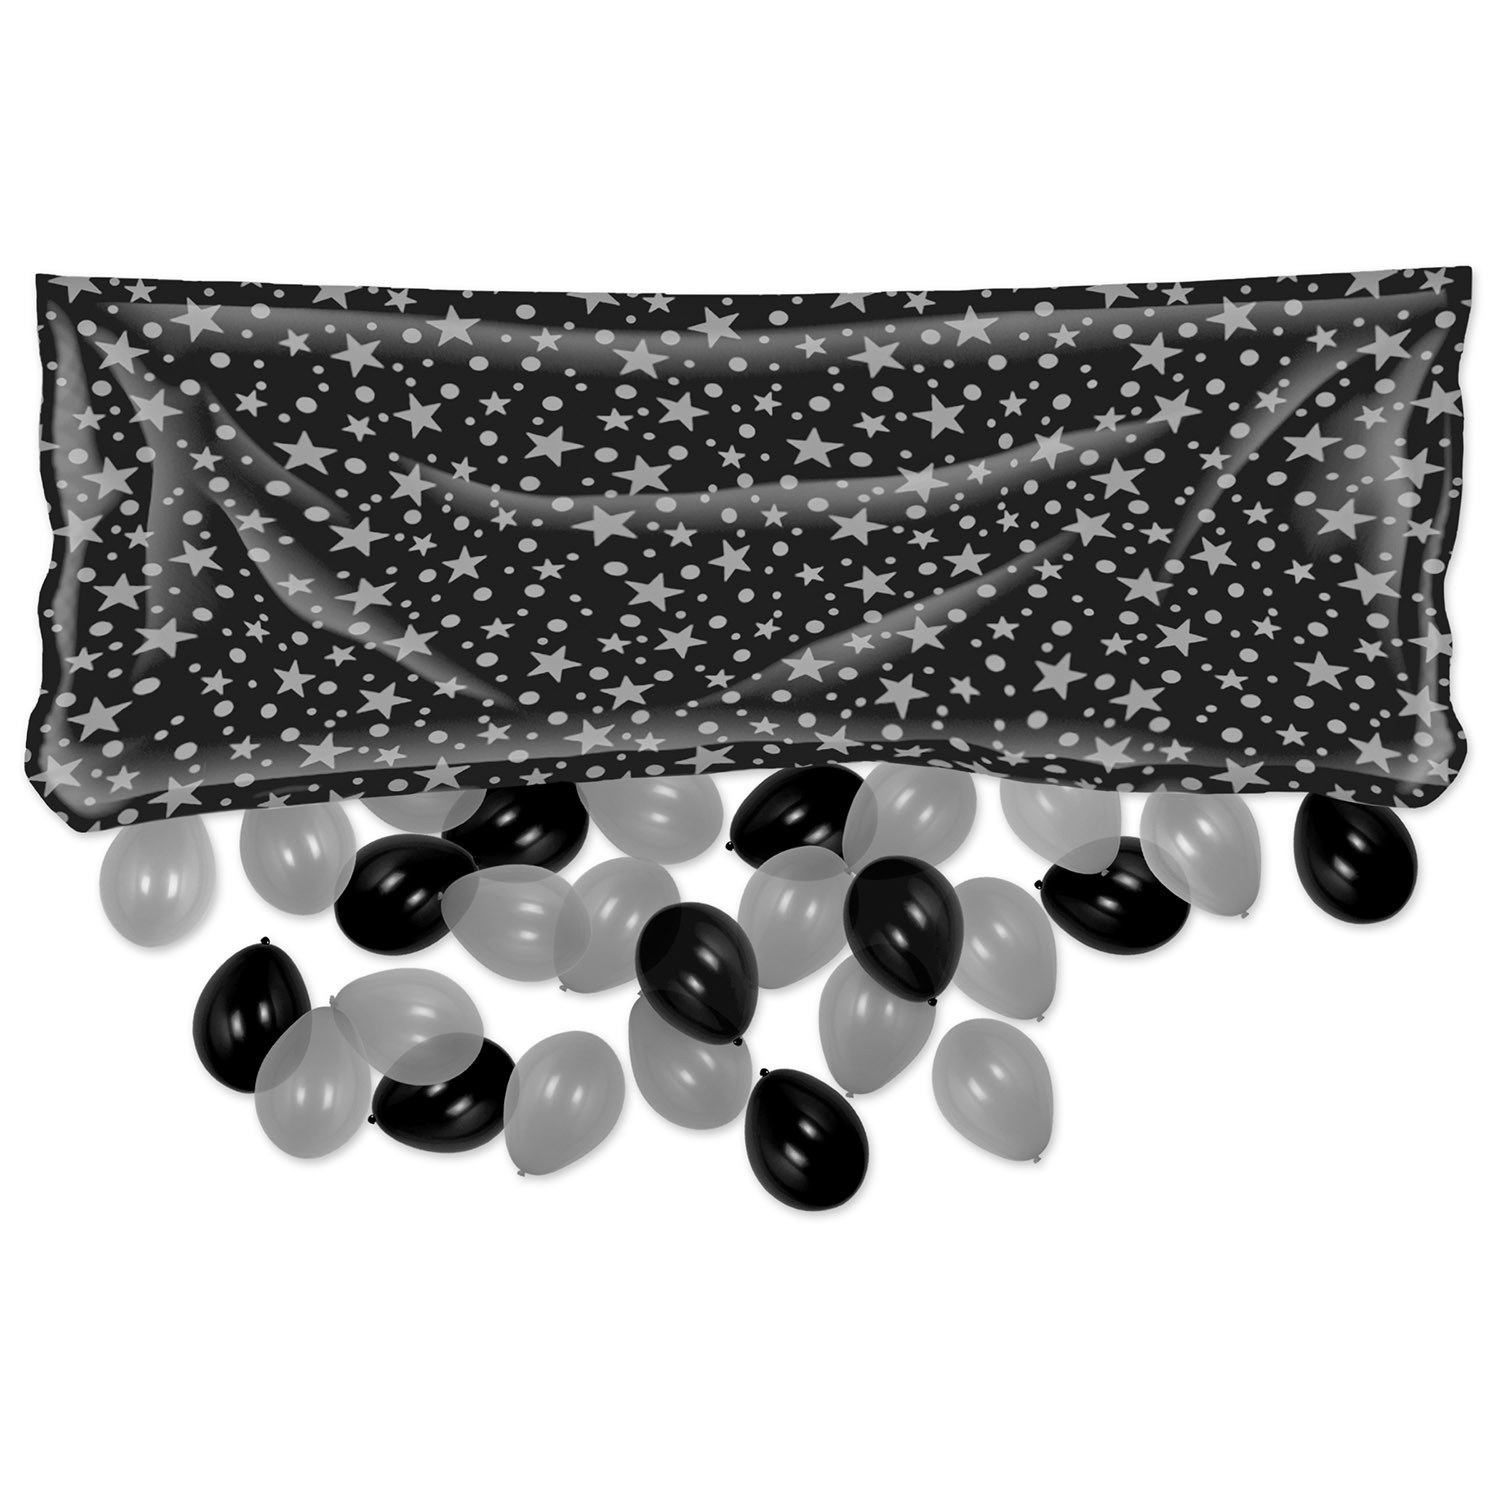 Plastic Balloon Bag (Pack of 1) plastic, balloon, bag, drop, black, silver, new years eve, confetti, wholesale, inexpensive, bulk